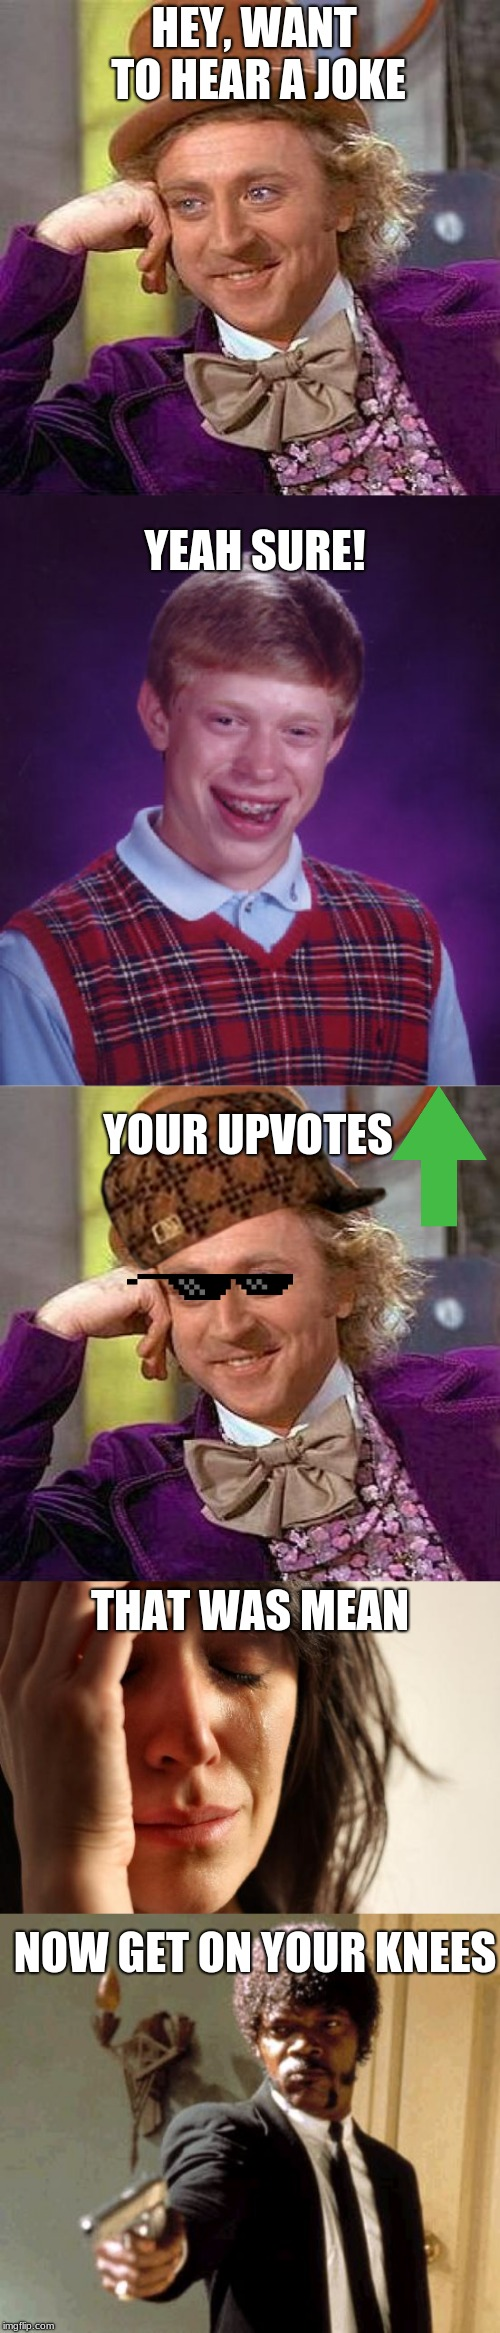 Want to hear a Joke? My Upvotes! Lol | HEY, WANT TO HEAR A JOKE YEAH SURE! YOUR UPVOTES THAT WAS MEAN NOW GET ON YOUR KNEES | image tagged in memes,first world problems,creepy condescending wonka,say that again i dare you,lol so funny,cant stop laughing | made w/ Imgflip meme maker